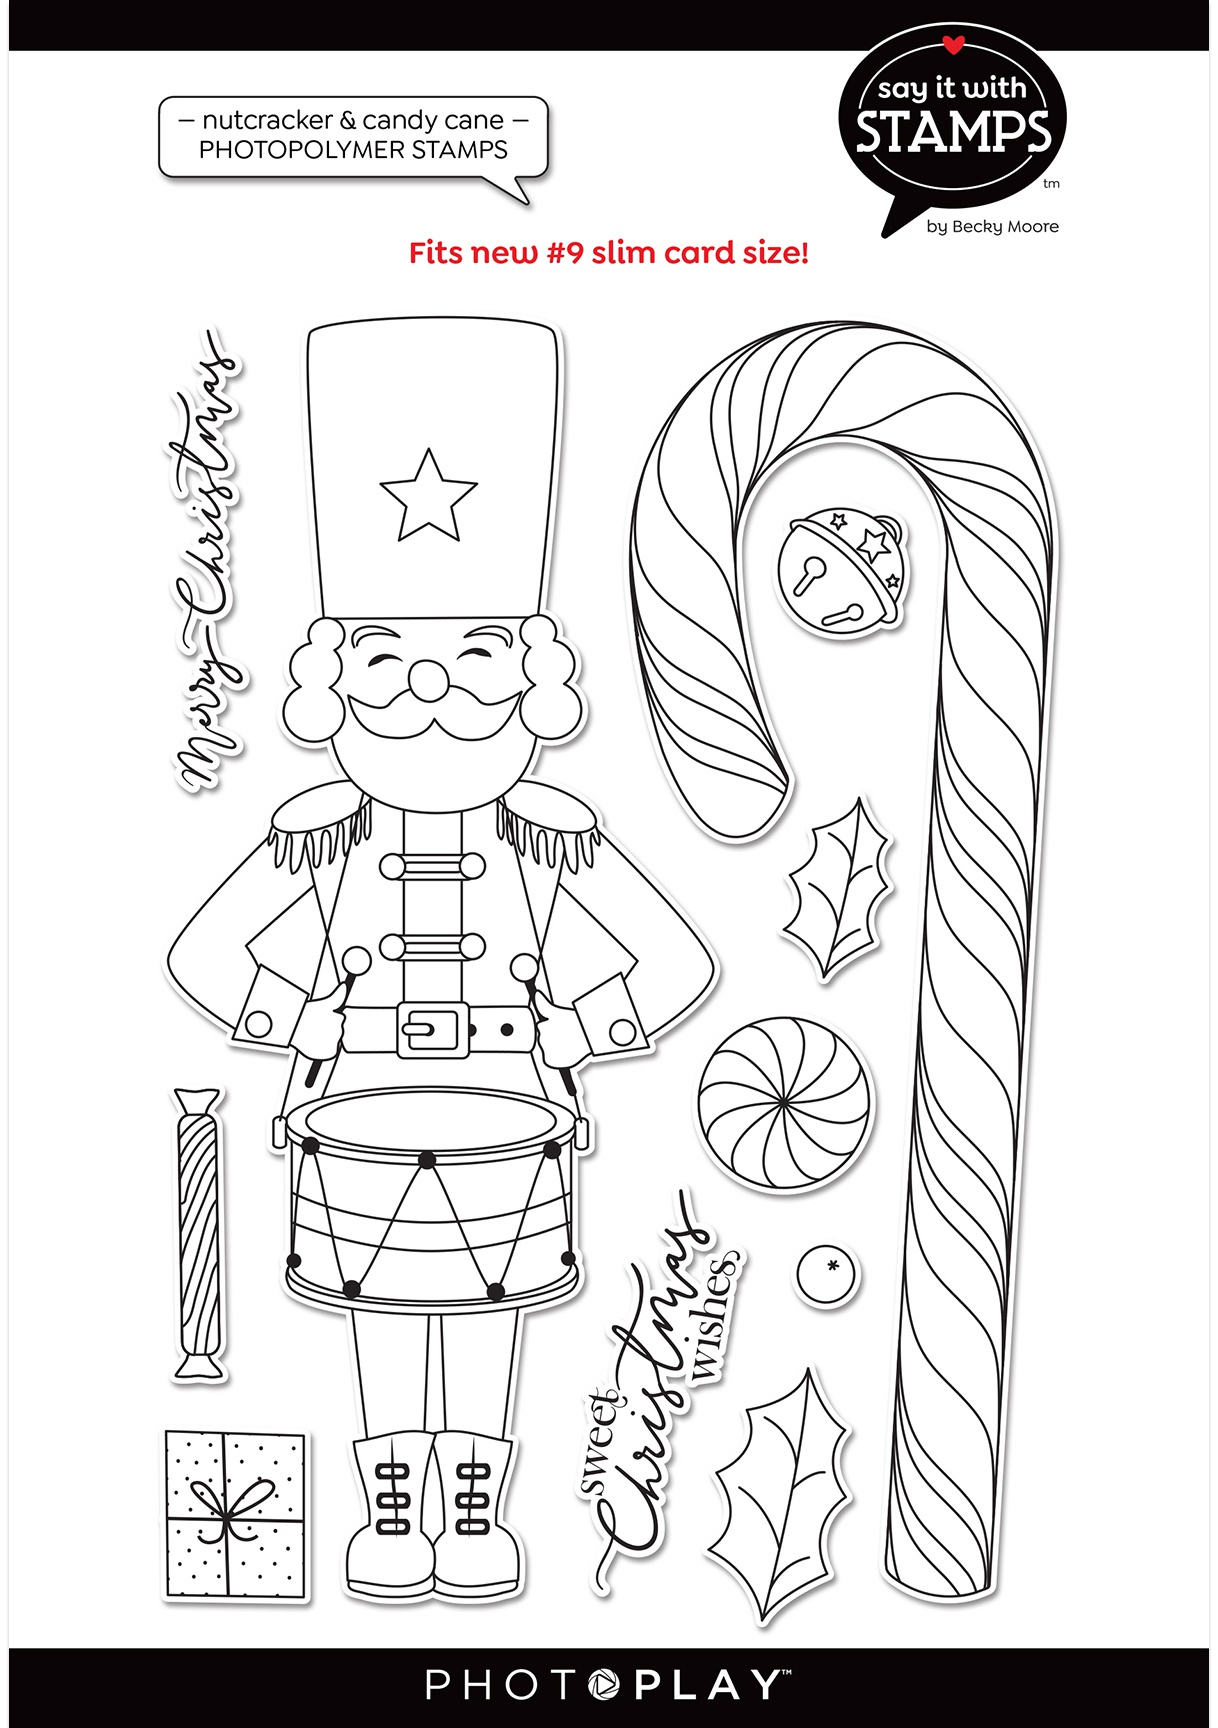 #9 Nutcracker/Candy Cane Say It With Stamps